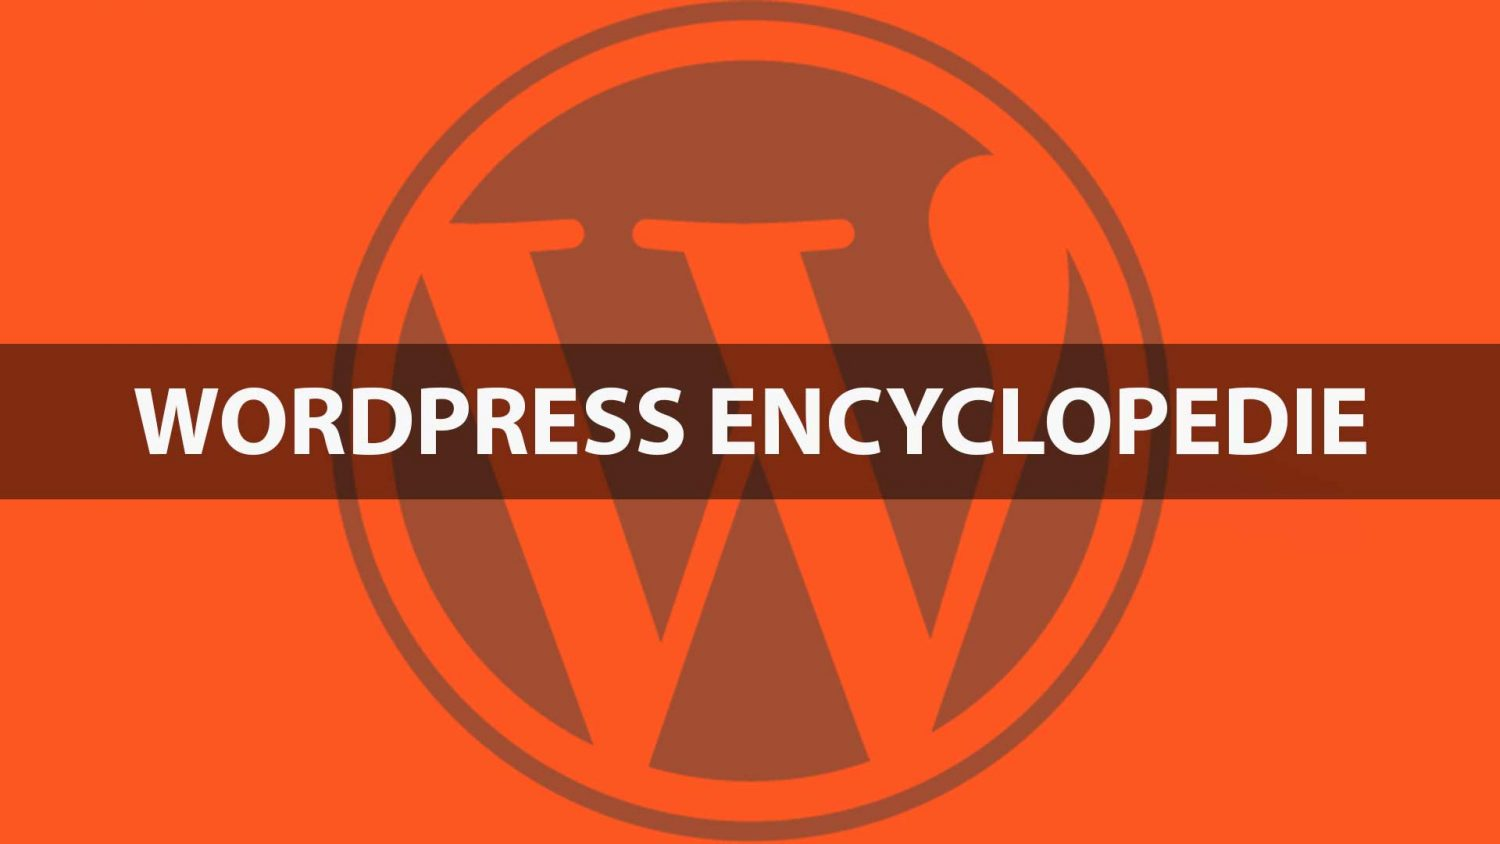 WordPress encyclopedie